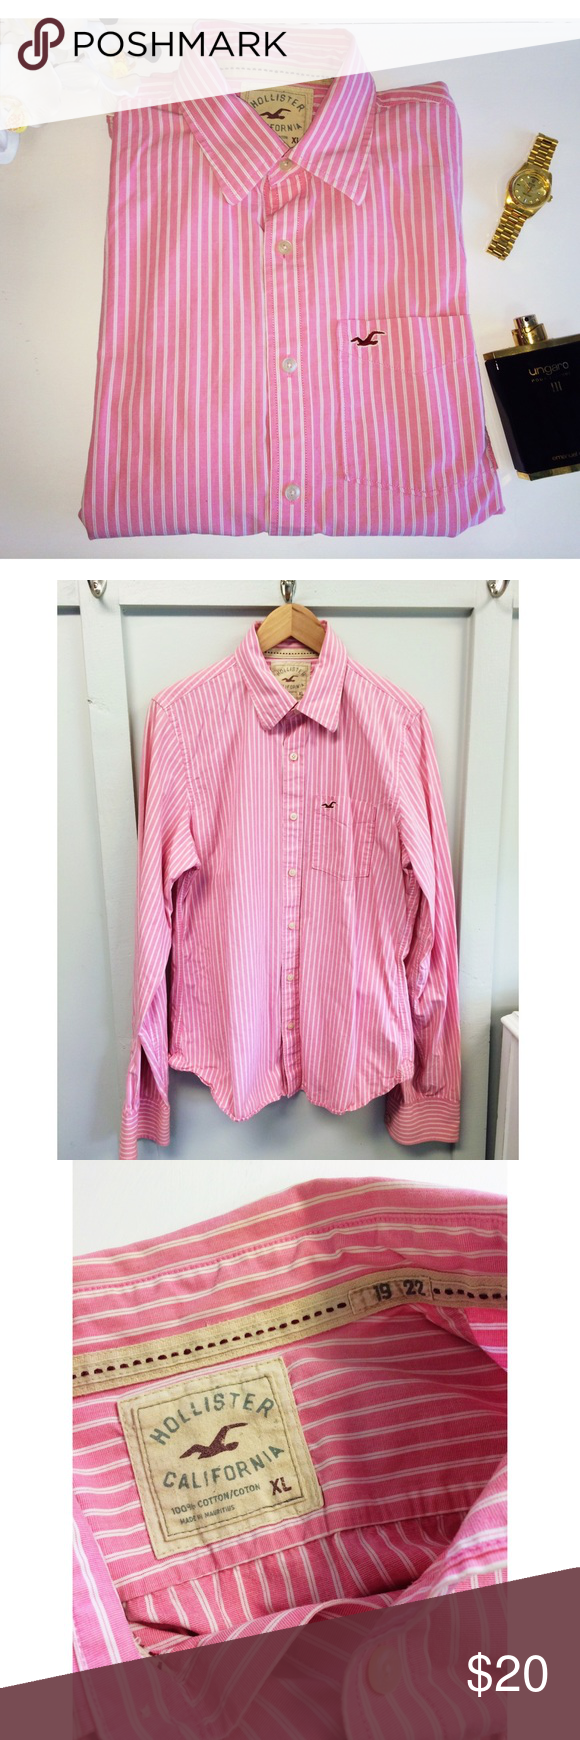 Hollister Guys Button Down Pink And White Striped Hollister Buttondown. Size XL. Also I Follow All Posh Rules & No Trades. An Unless It Says SOLD, It's Still Available! Everything Comes Clean From A Smoke Free Home! Thank You! Don't Forget To Bundle & Happy Poshing! ☕️🌵 Hollister Shirts Casual Button Down Shirts